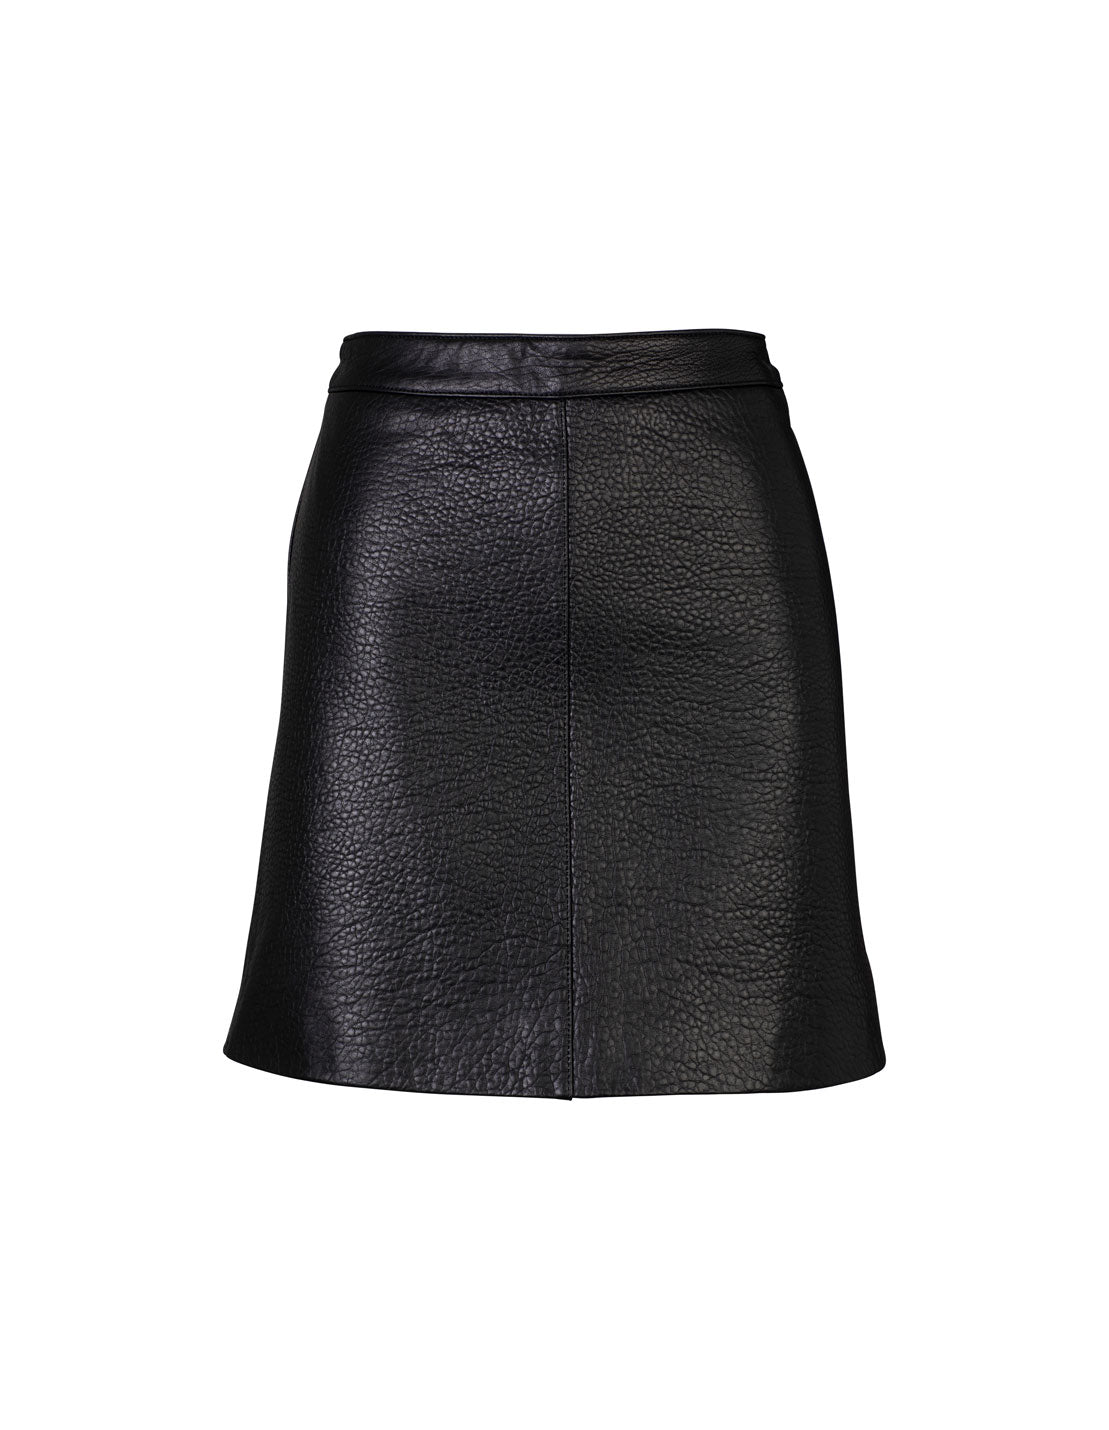 Classic Mini Skirt - Black/Pebbled